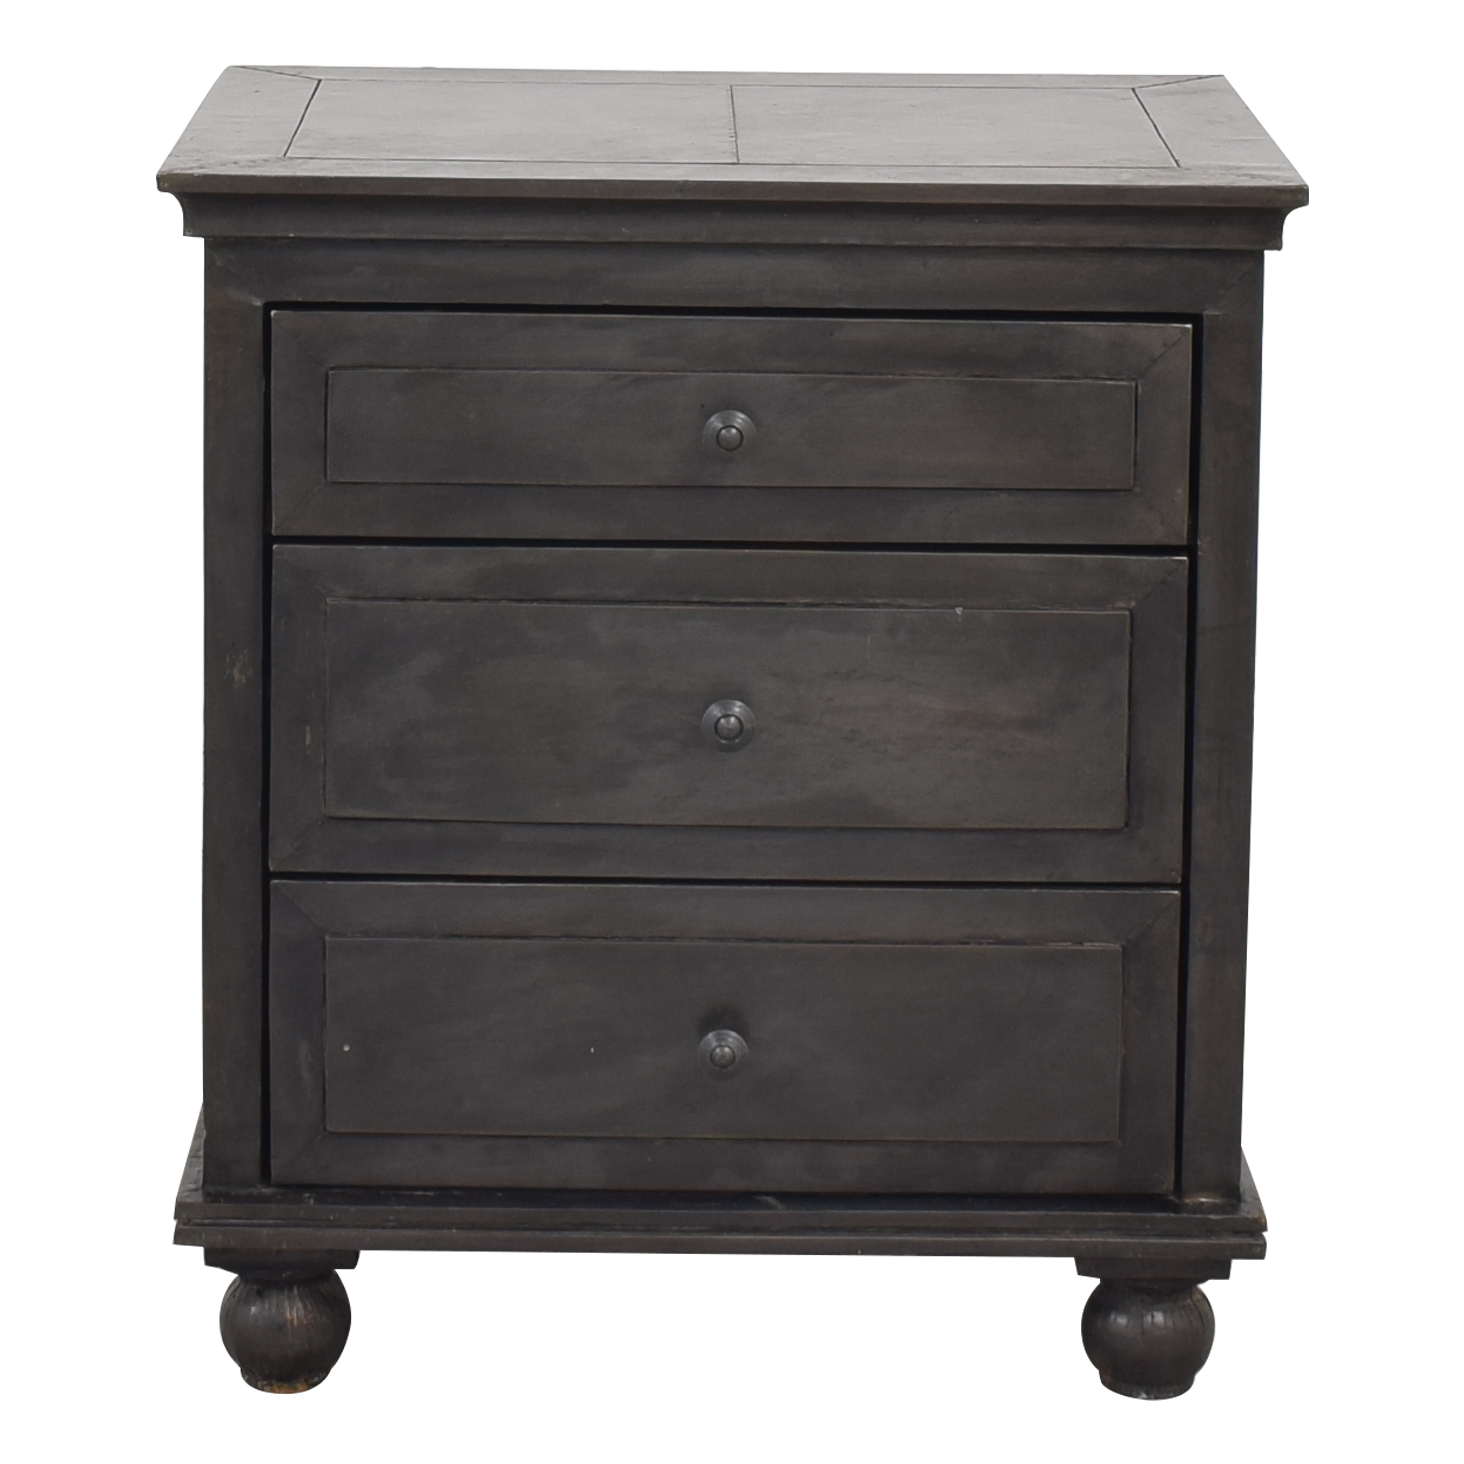 shop Restoration Hardware Annecy Metal-Wrapped Closed Nightstand Restoration Hardware